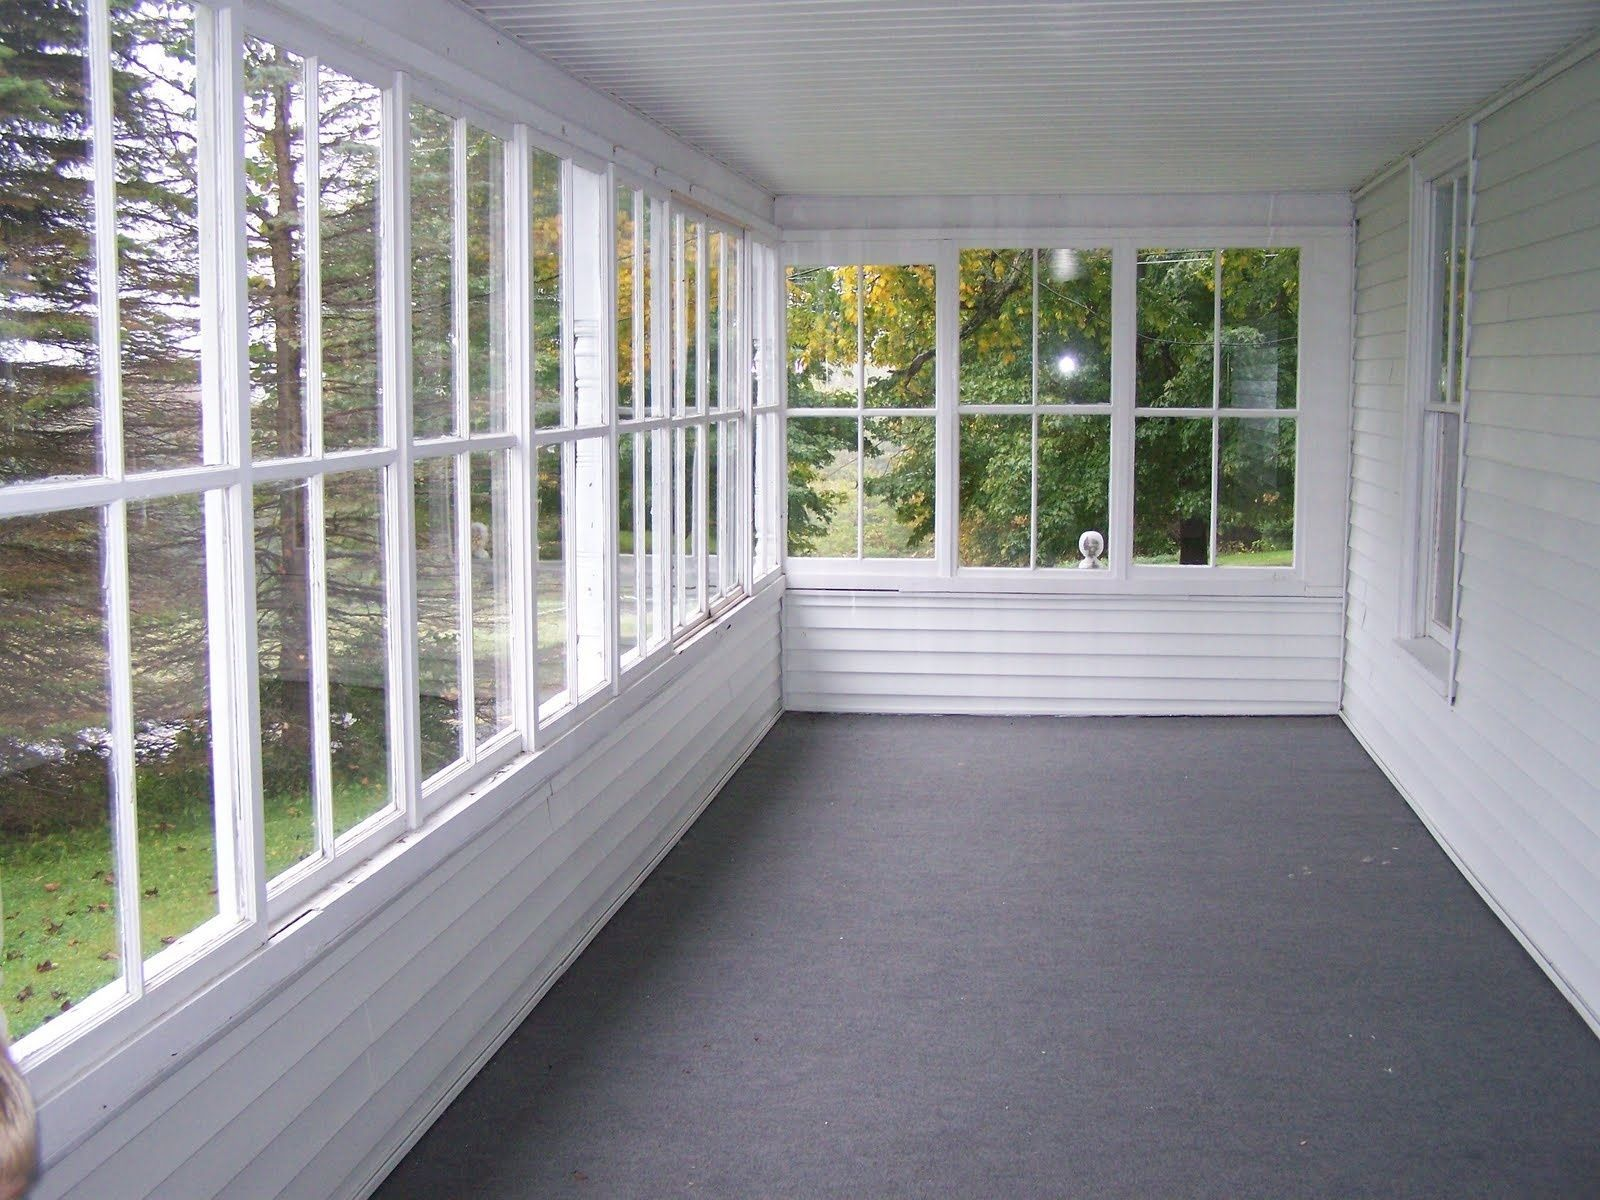 The Best Enclosed Porch Design And Decor Ideas 14